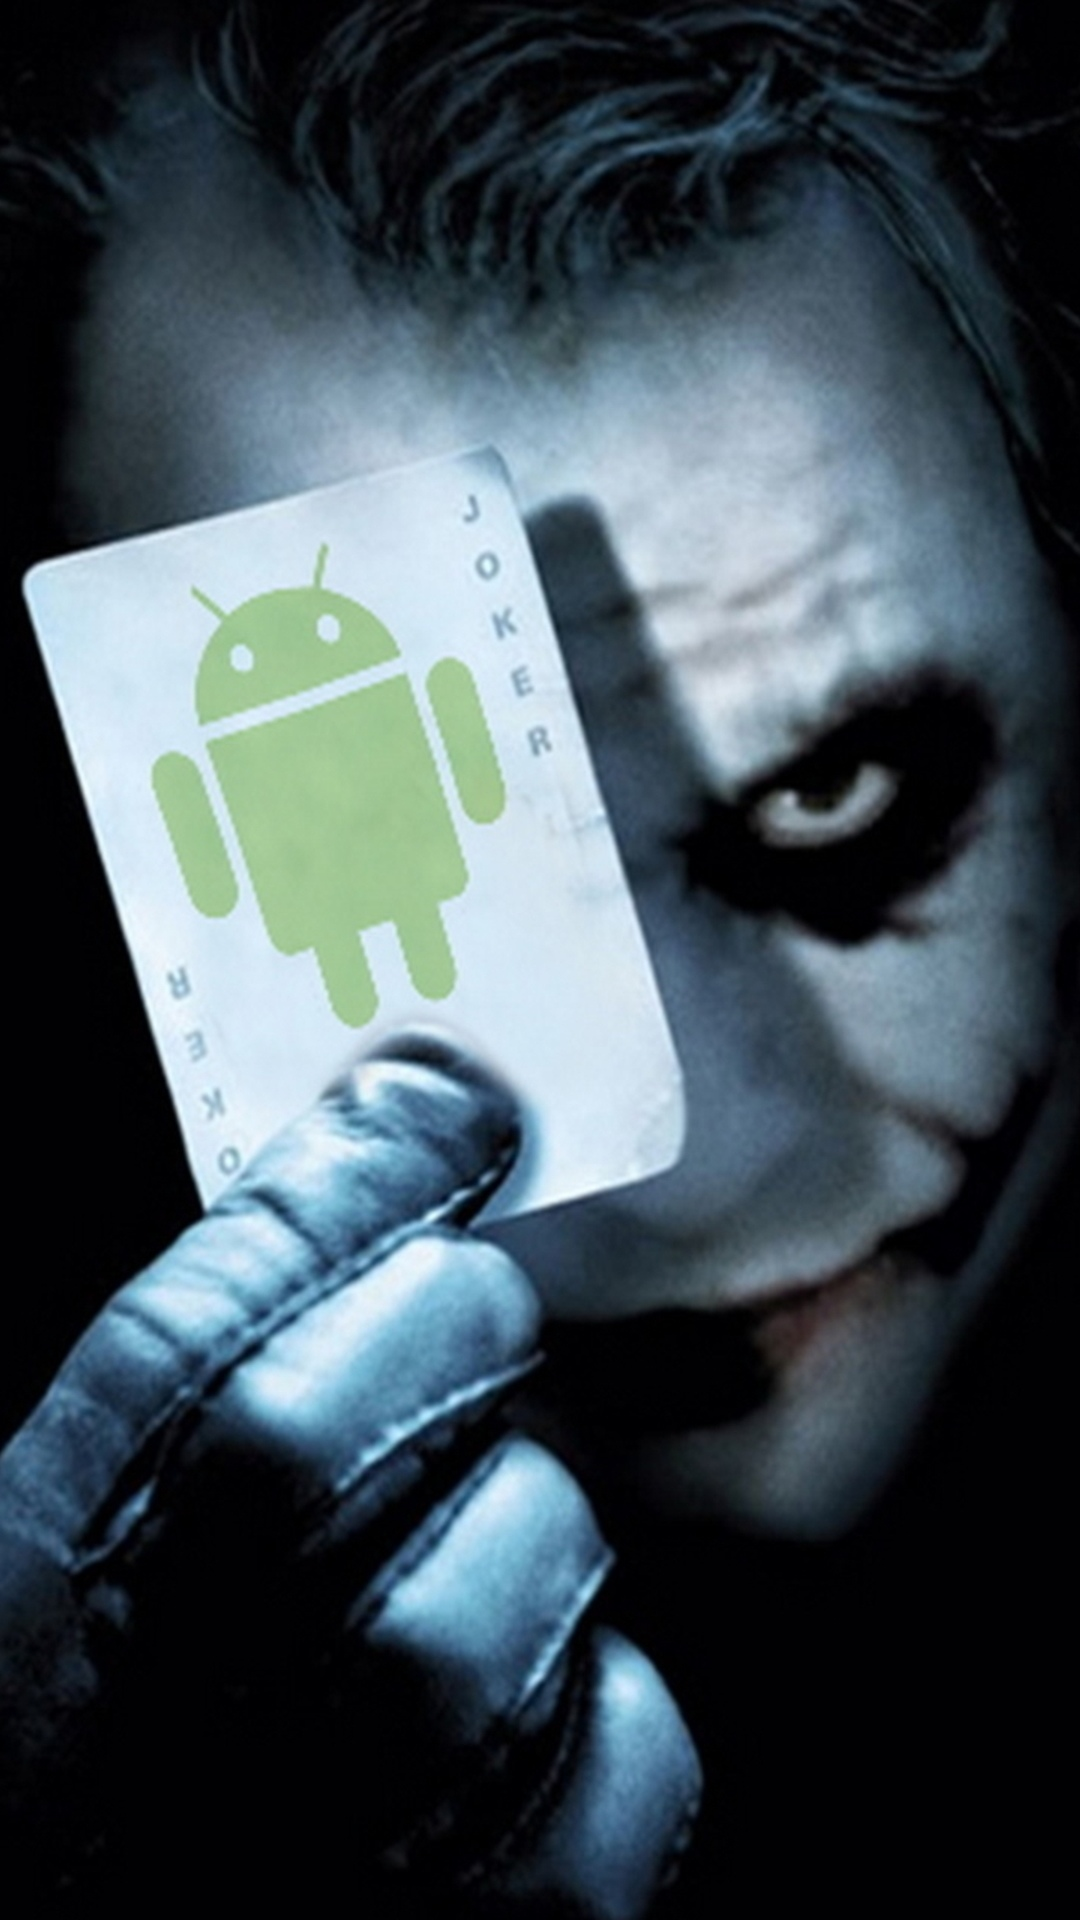 Android Joker Card Smartphone Wallpapers Hd Getphotos